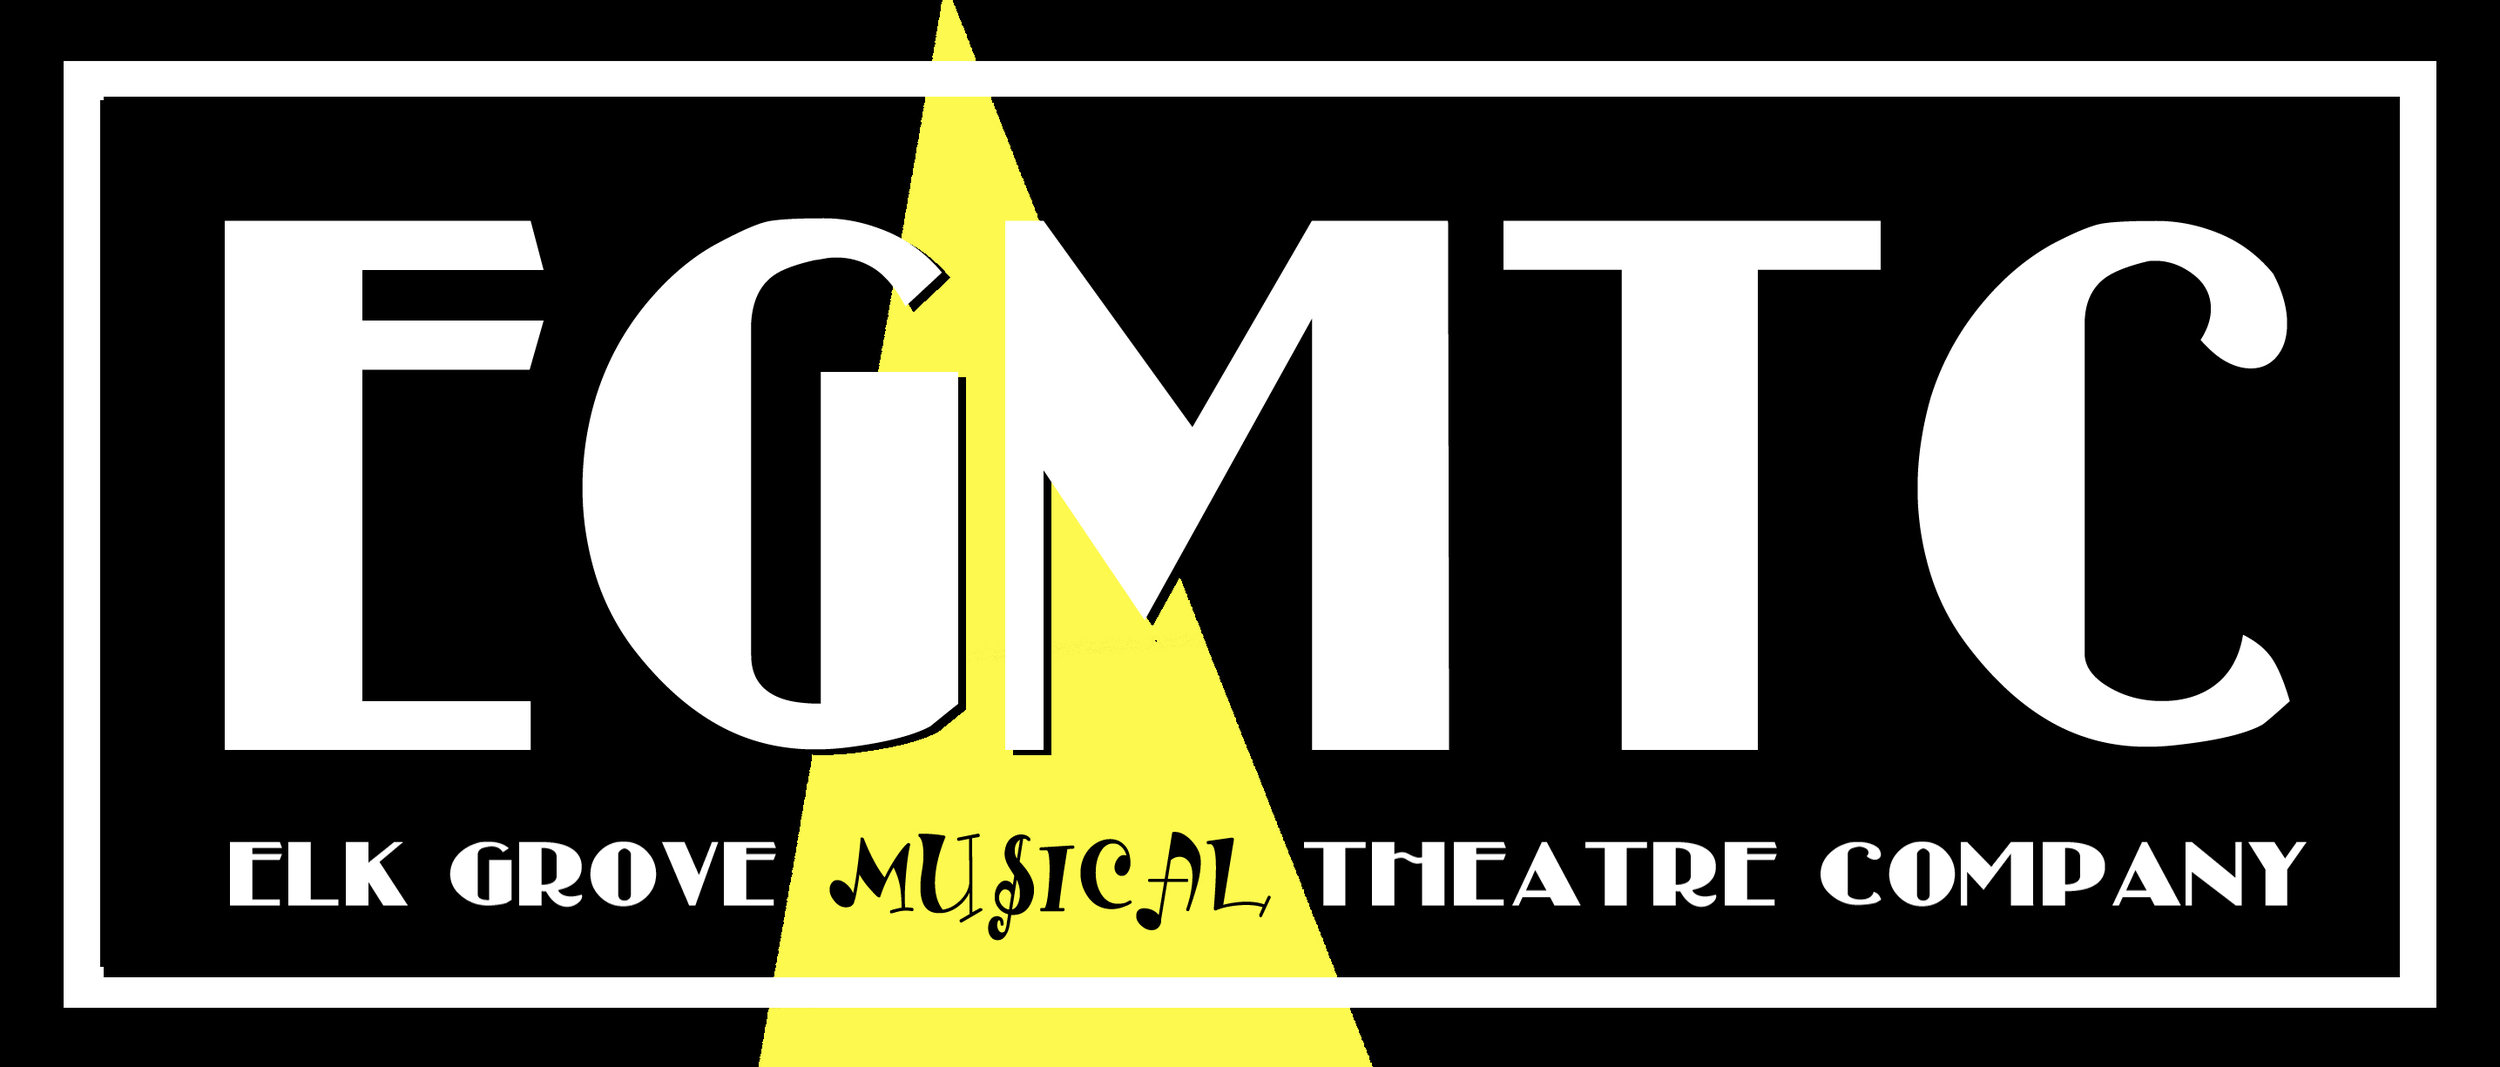 egmtc logo simplified - black.jpg